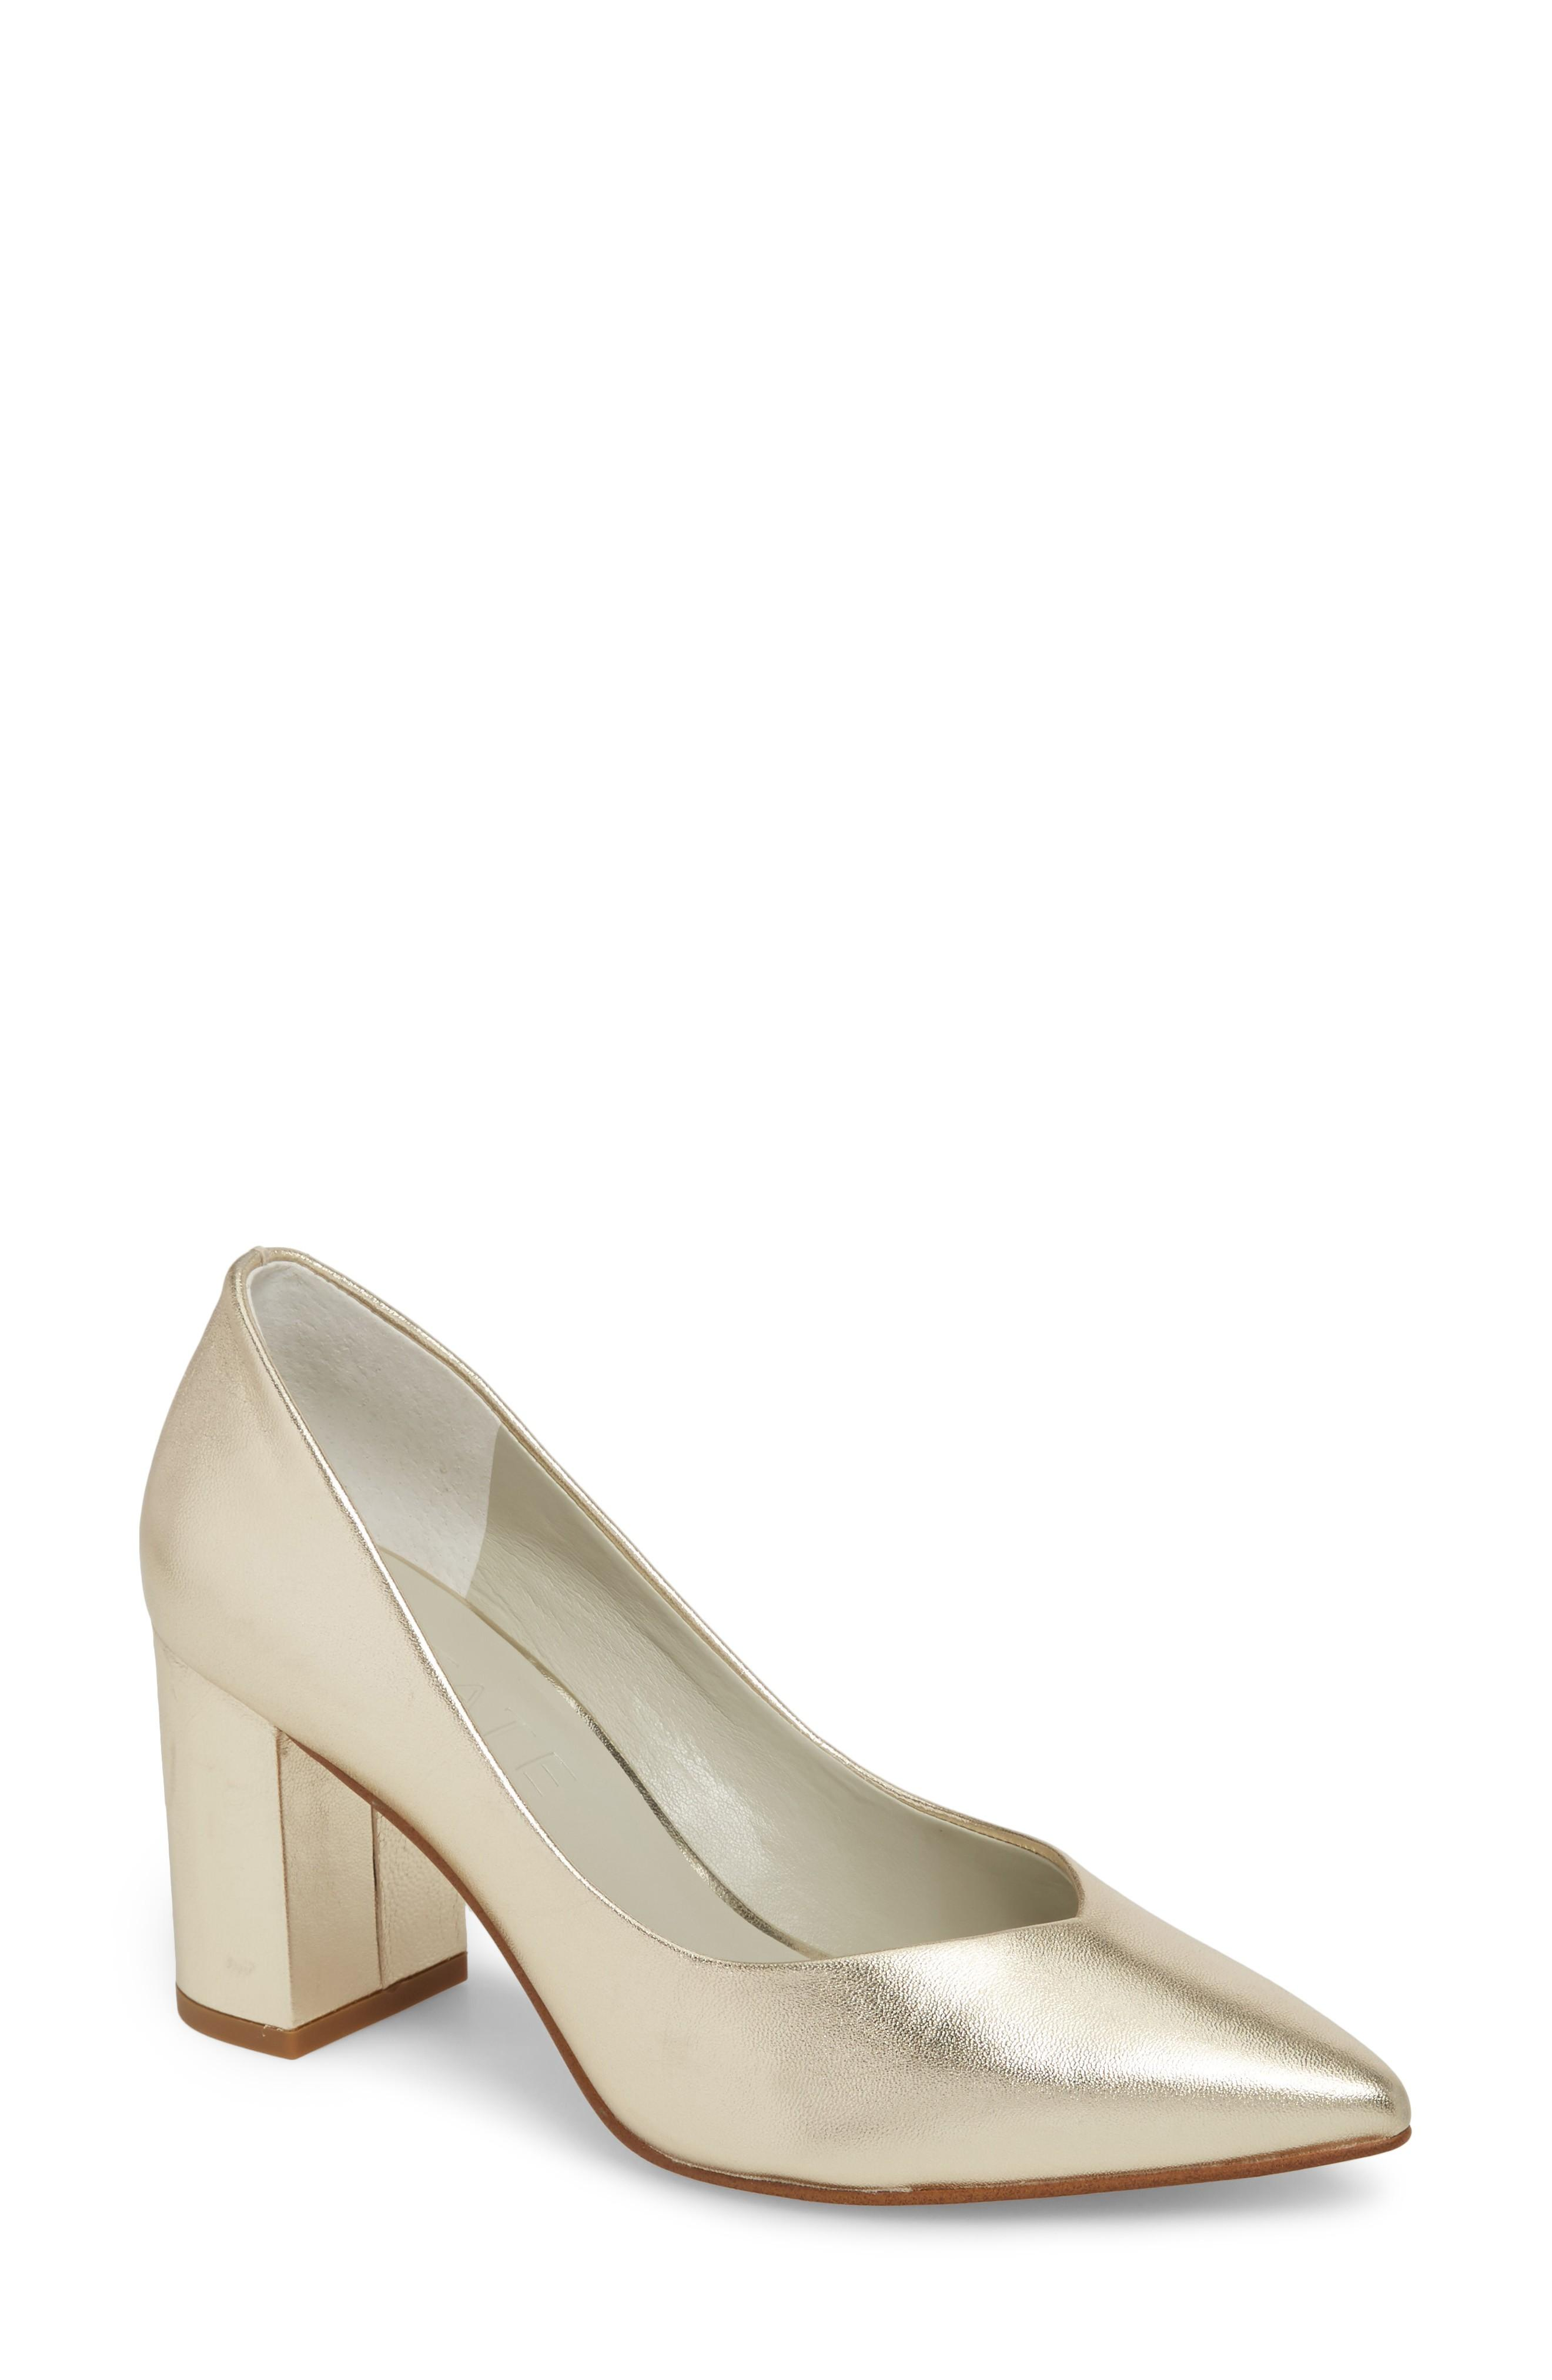 8a0f687fee9 A lightly pointed topline echoes the toe shape of a velvety suede pump  lofted on a blocky half-moon heel. Style Name 1.state Saffy Block Heel Pump  (Women).